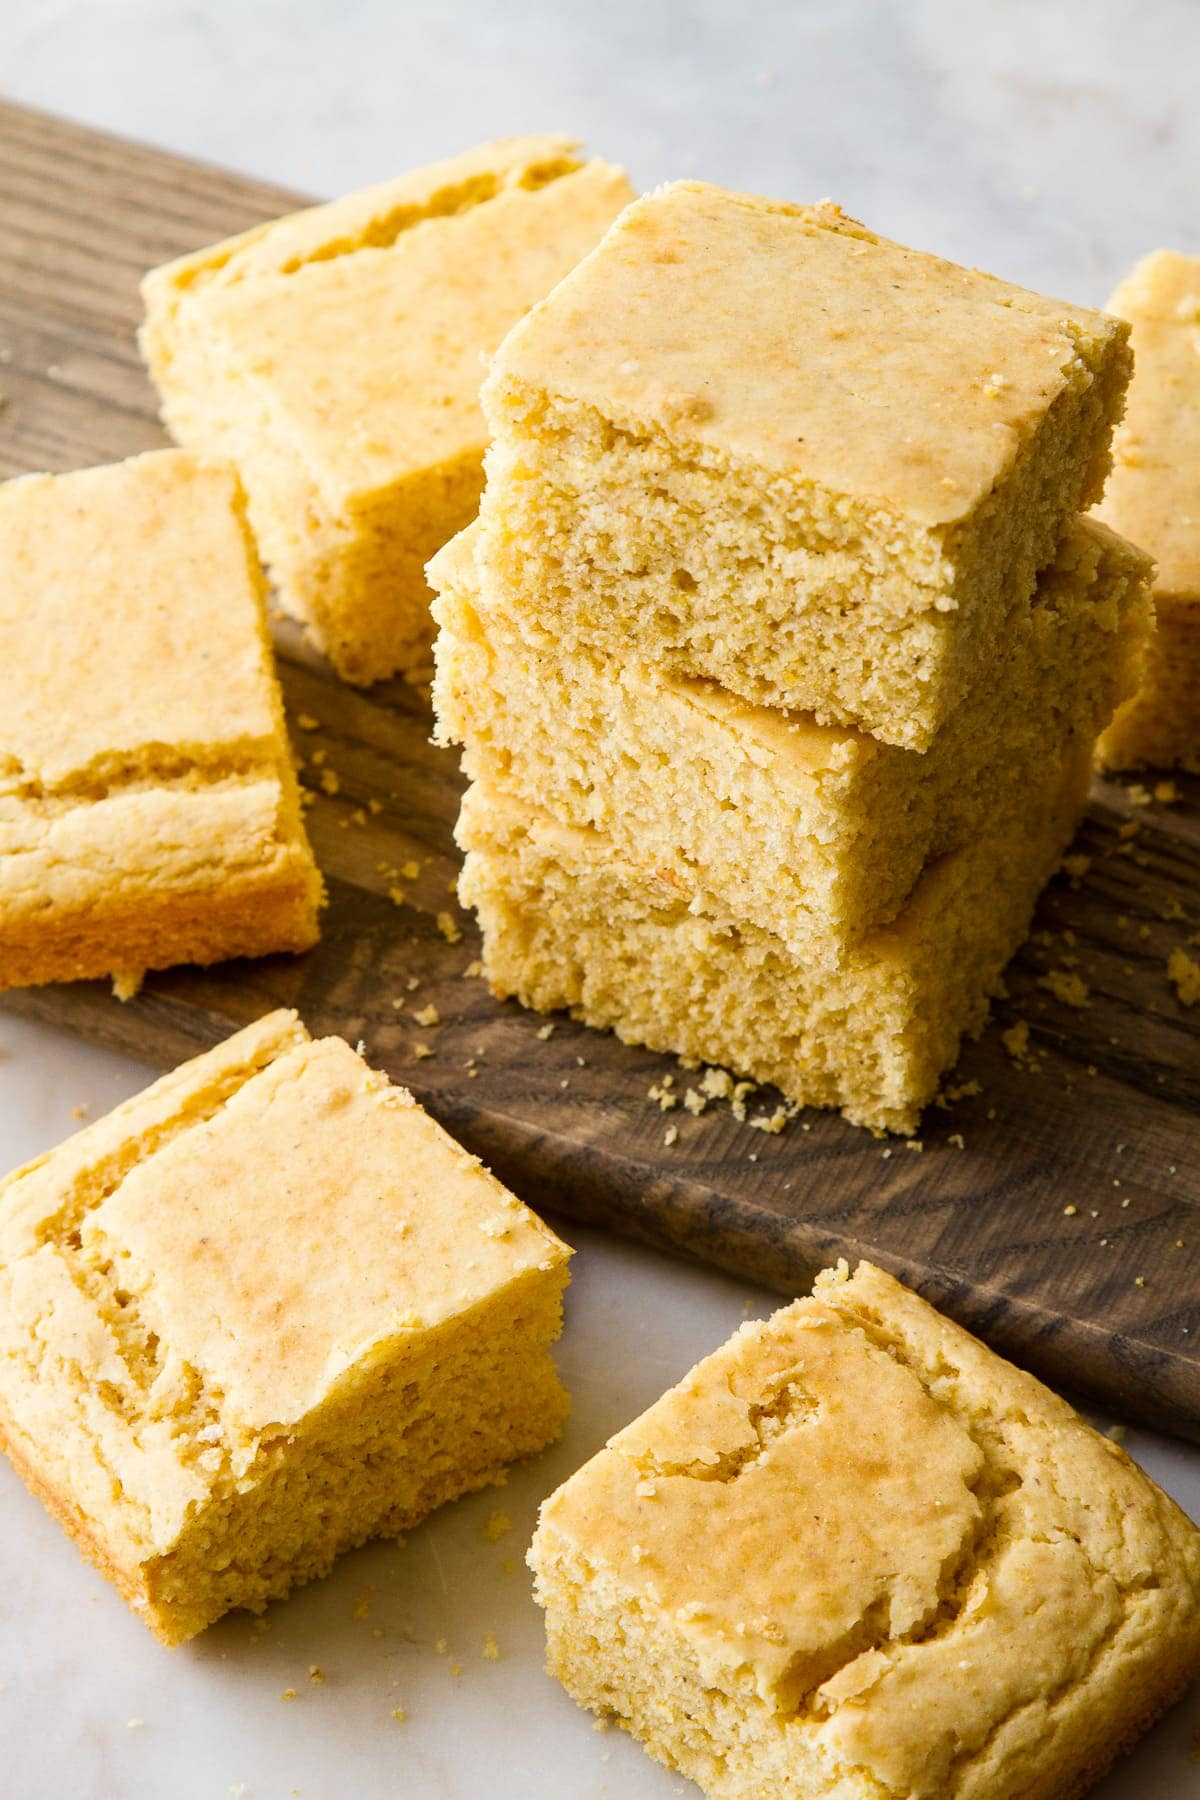 side angle view of slices of freshly made vegan cornbread on a wooden serving board.